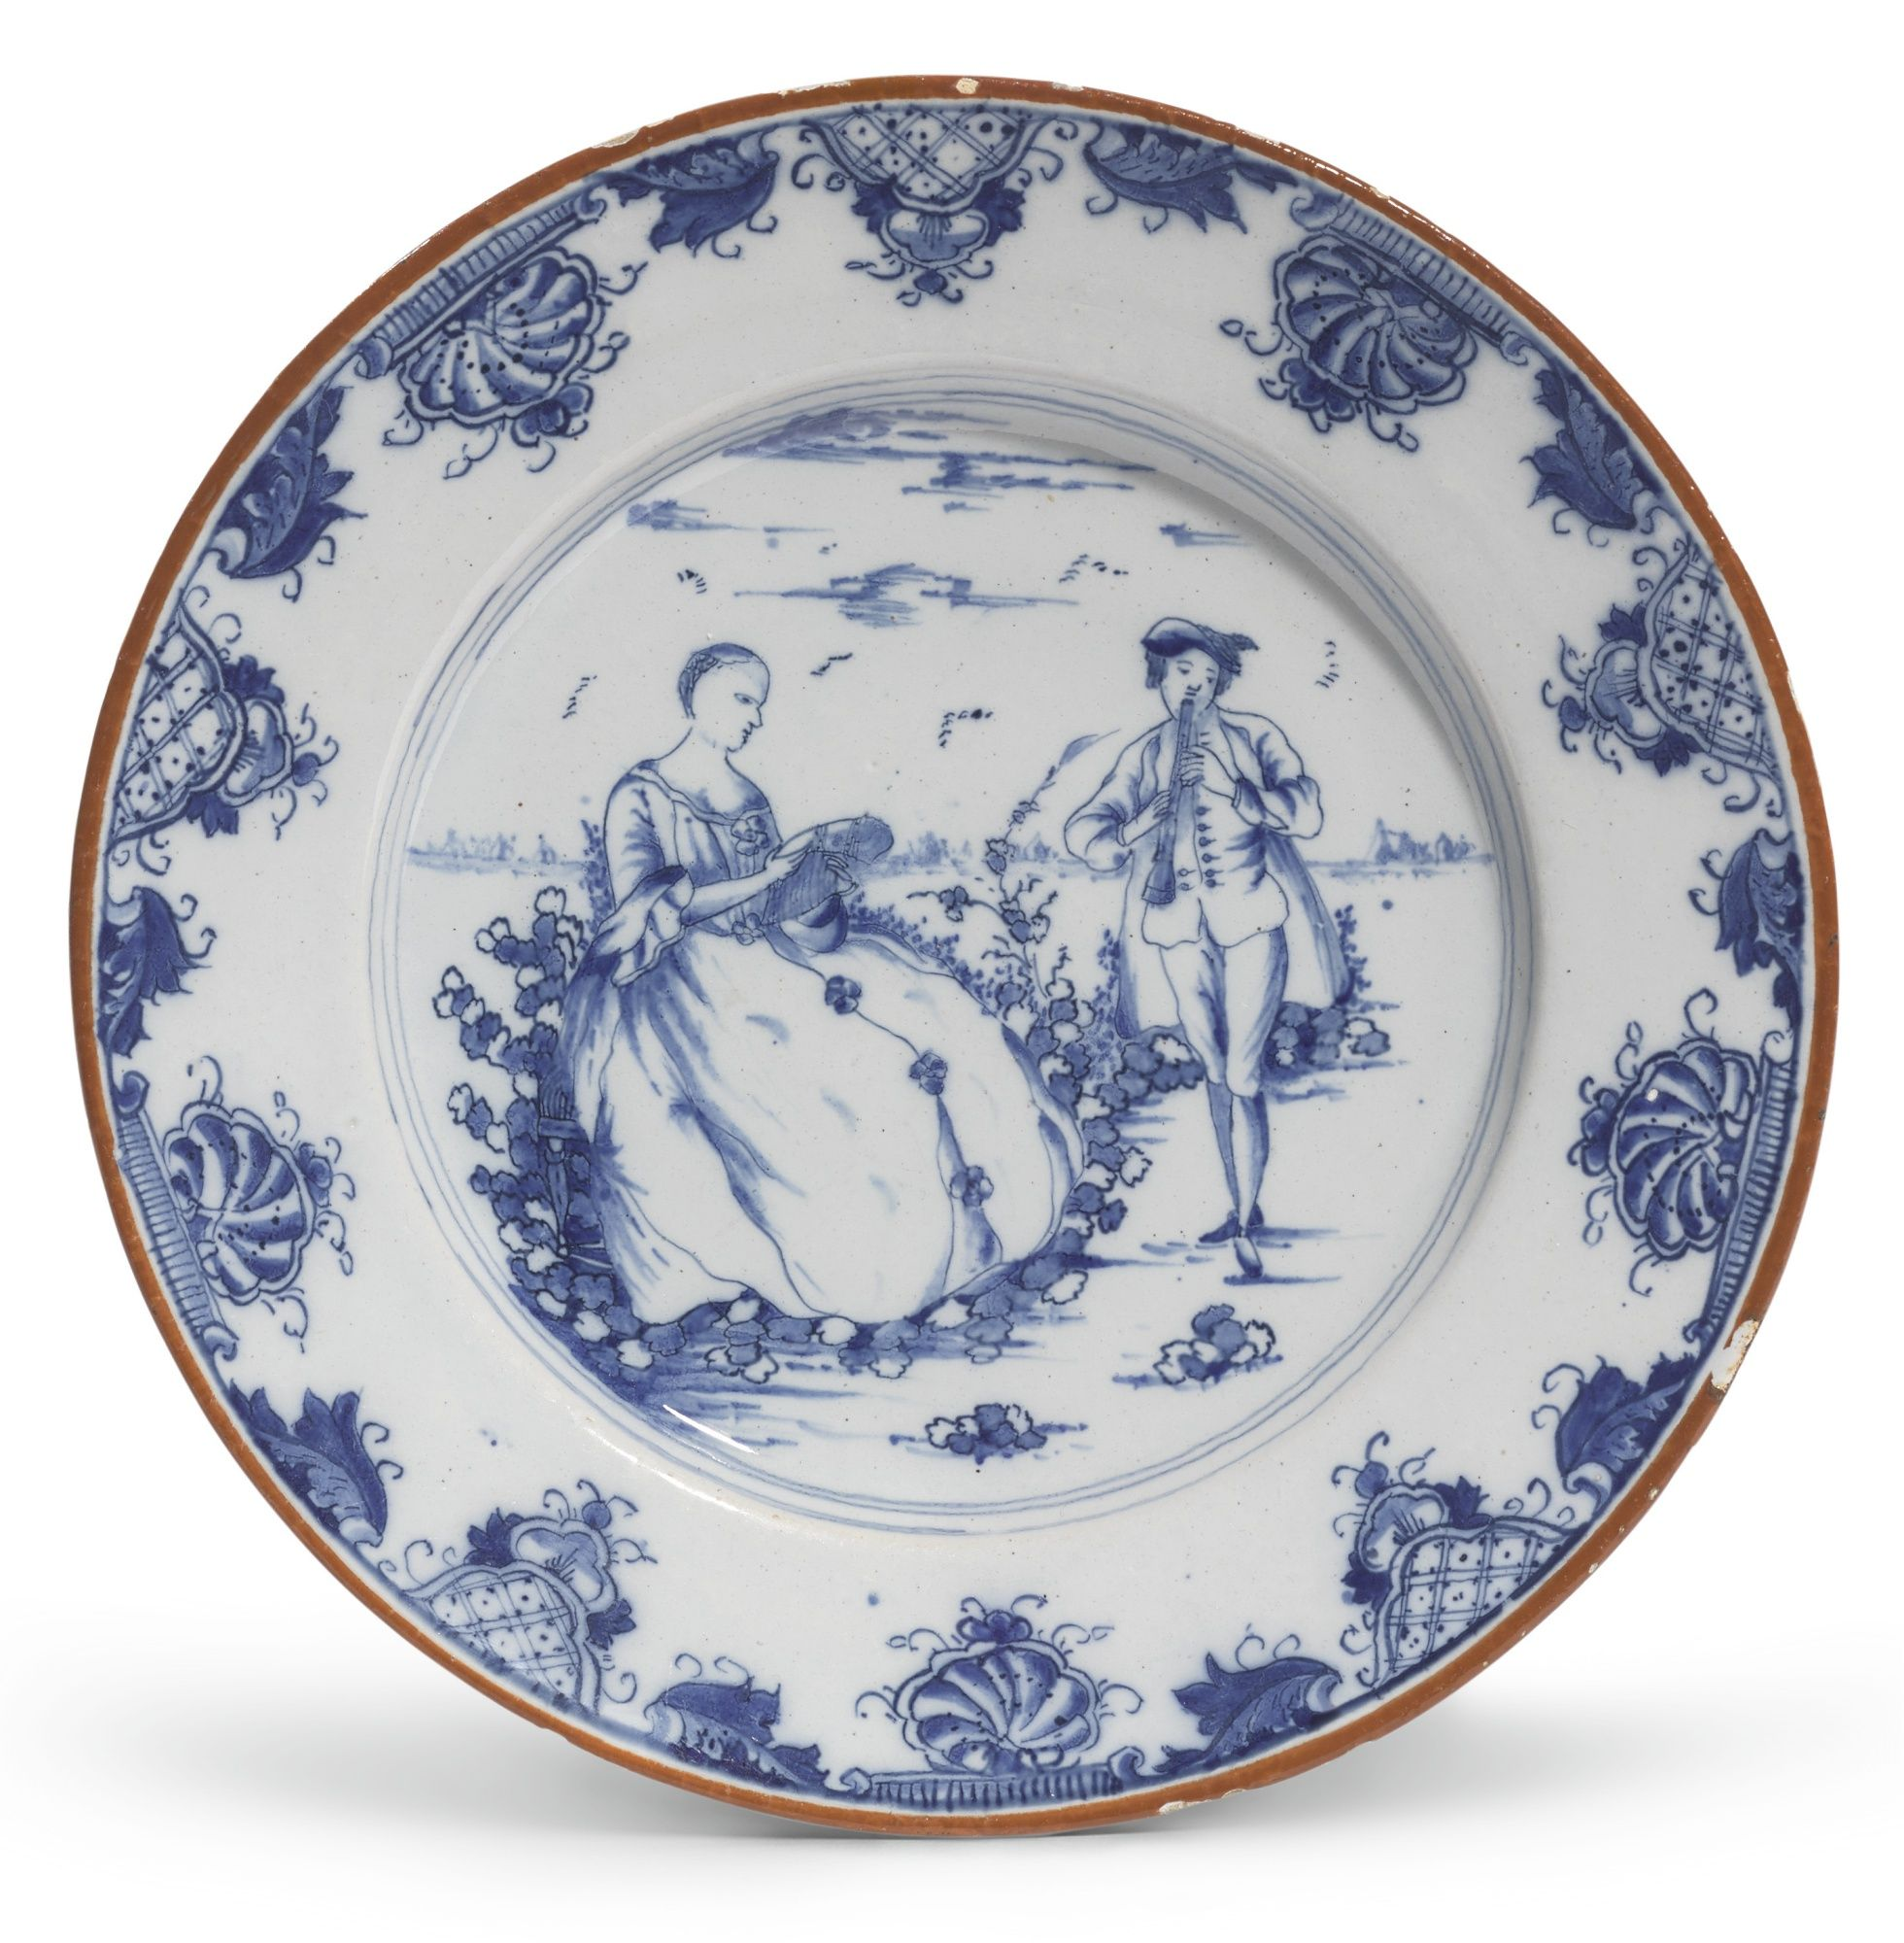 A Dutch Delft Blue And White Plate Mid 18th Century Painted With A Cartouche Of A Rustic Couple In A Landscape She Dutch Ceramic 18th Century Paintings Delft